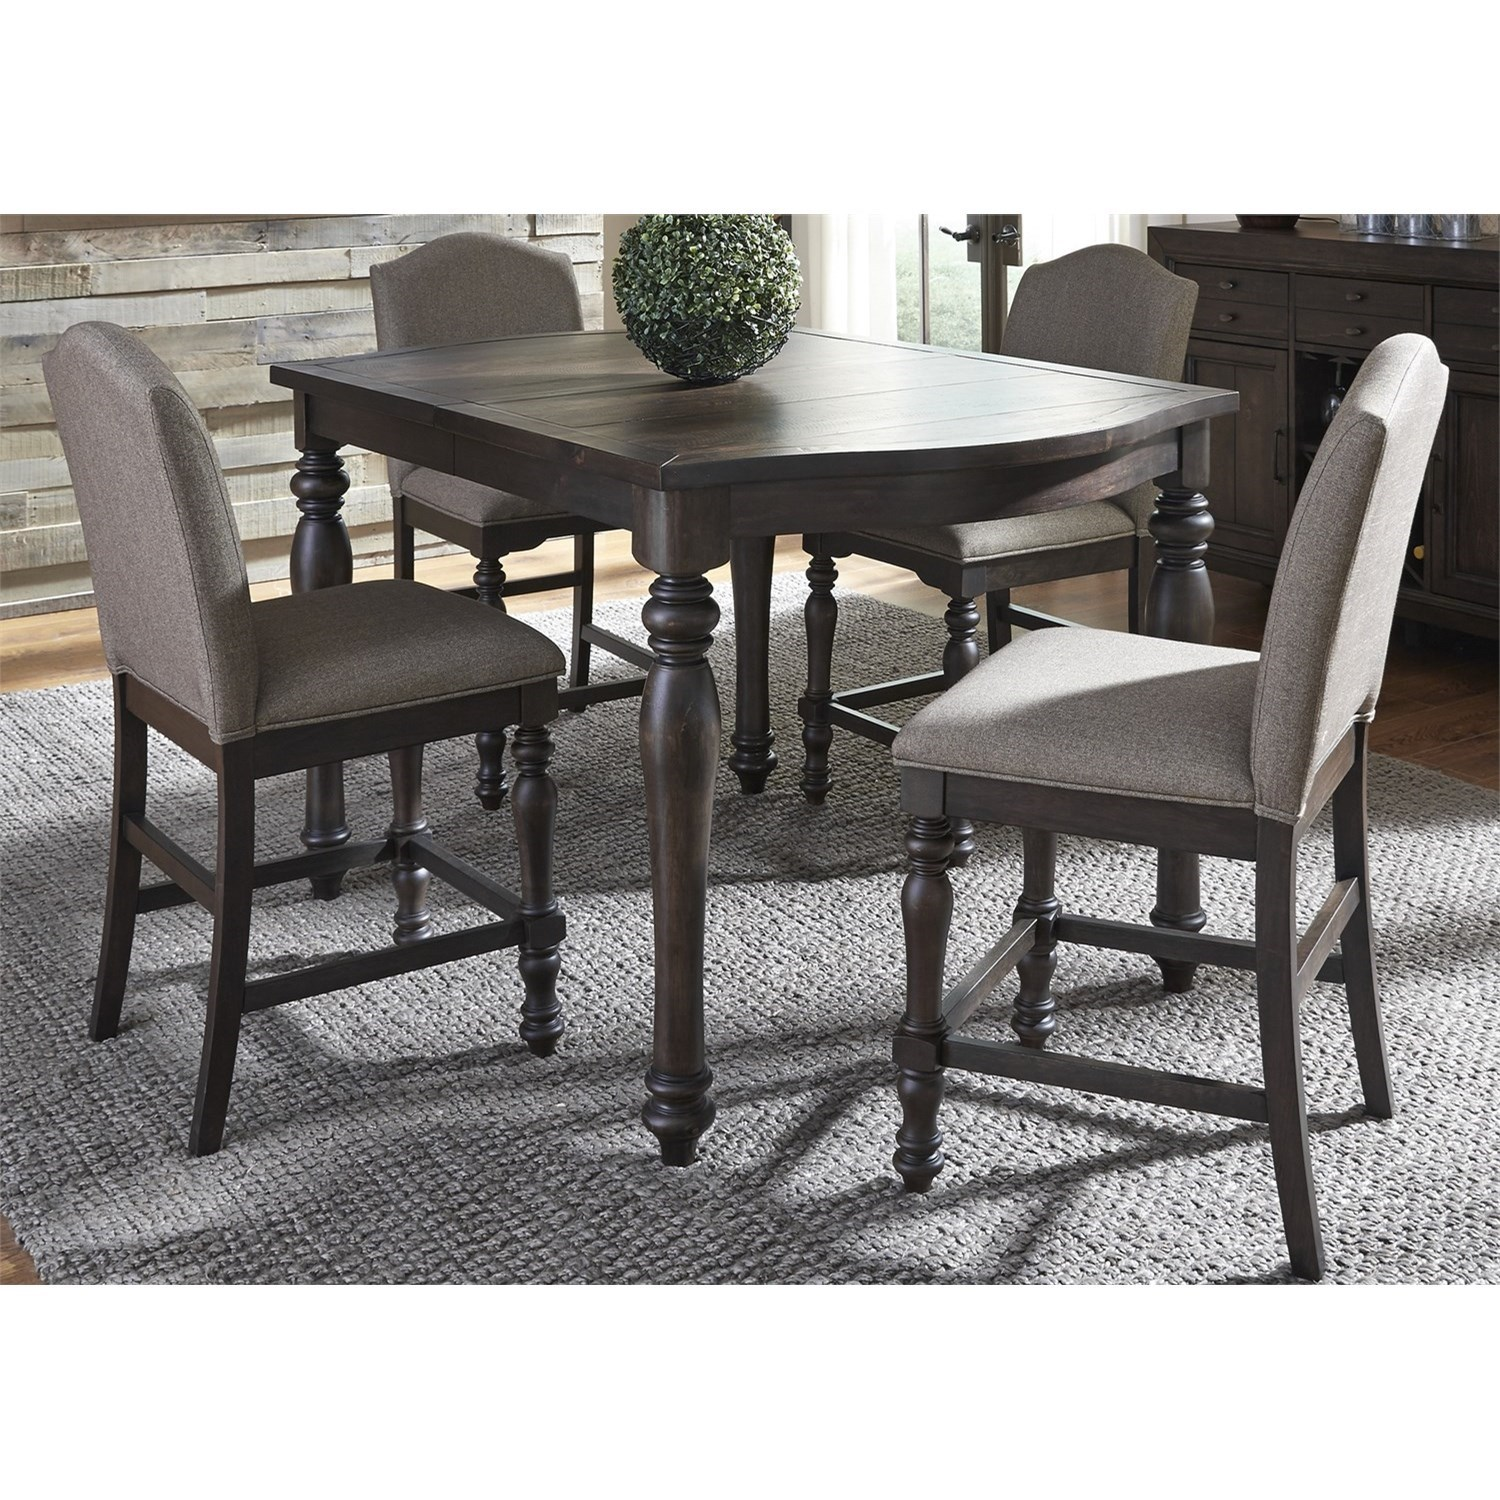 Liberty Furniture Catawba Hills Dining 5 Piece Gathering Table Set  sc 1 st  Adcock Furniture & Liberty Furniture Catawba Hills Dining 5 Piece Gathering Table Set ...